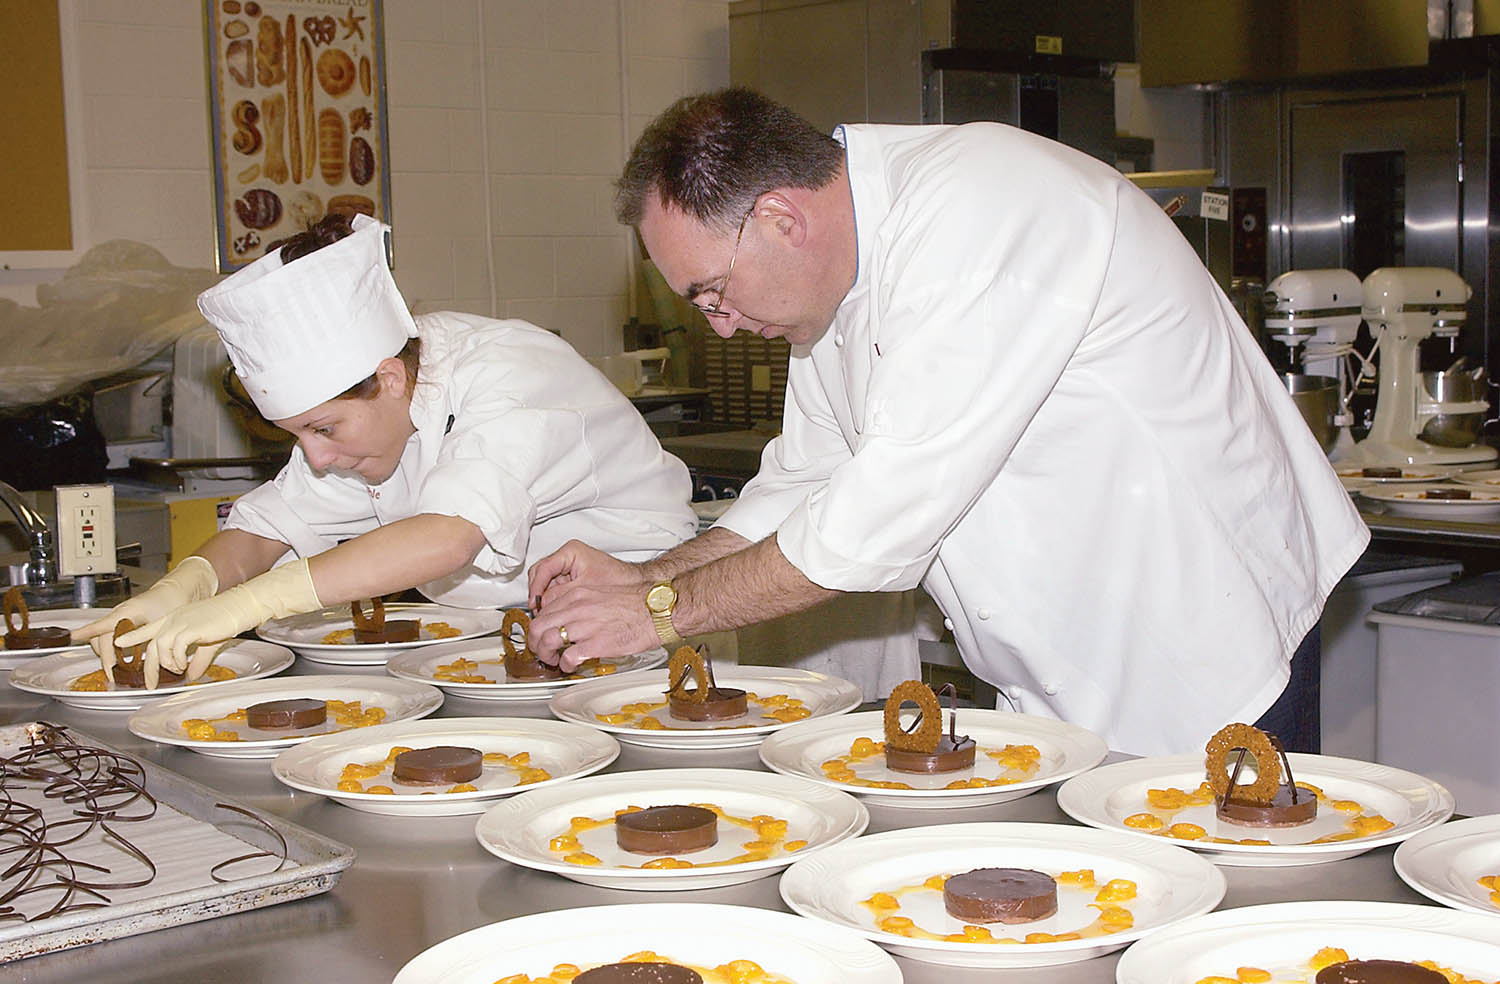 In 2003, a student works alongside Chef David Robins, then-executive pastry chef for the Corner Café and Buckhead Bread Co. Photo by Cindy Davis Meixel.